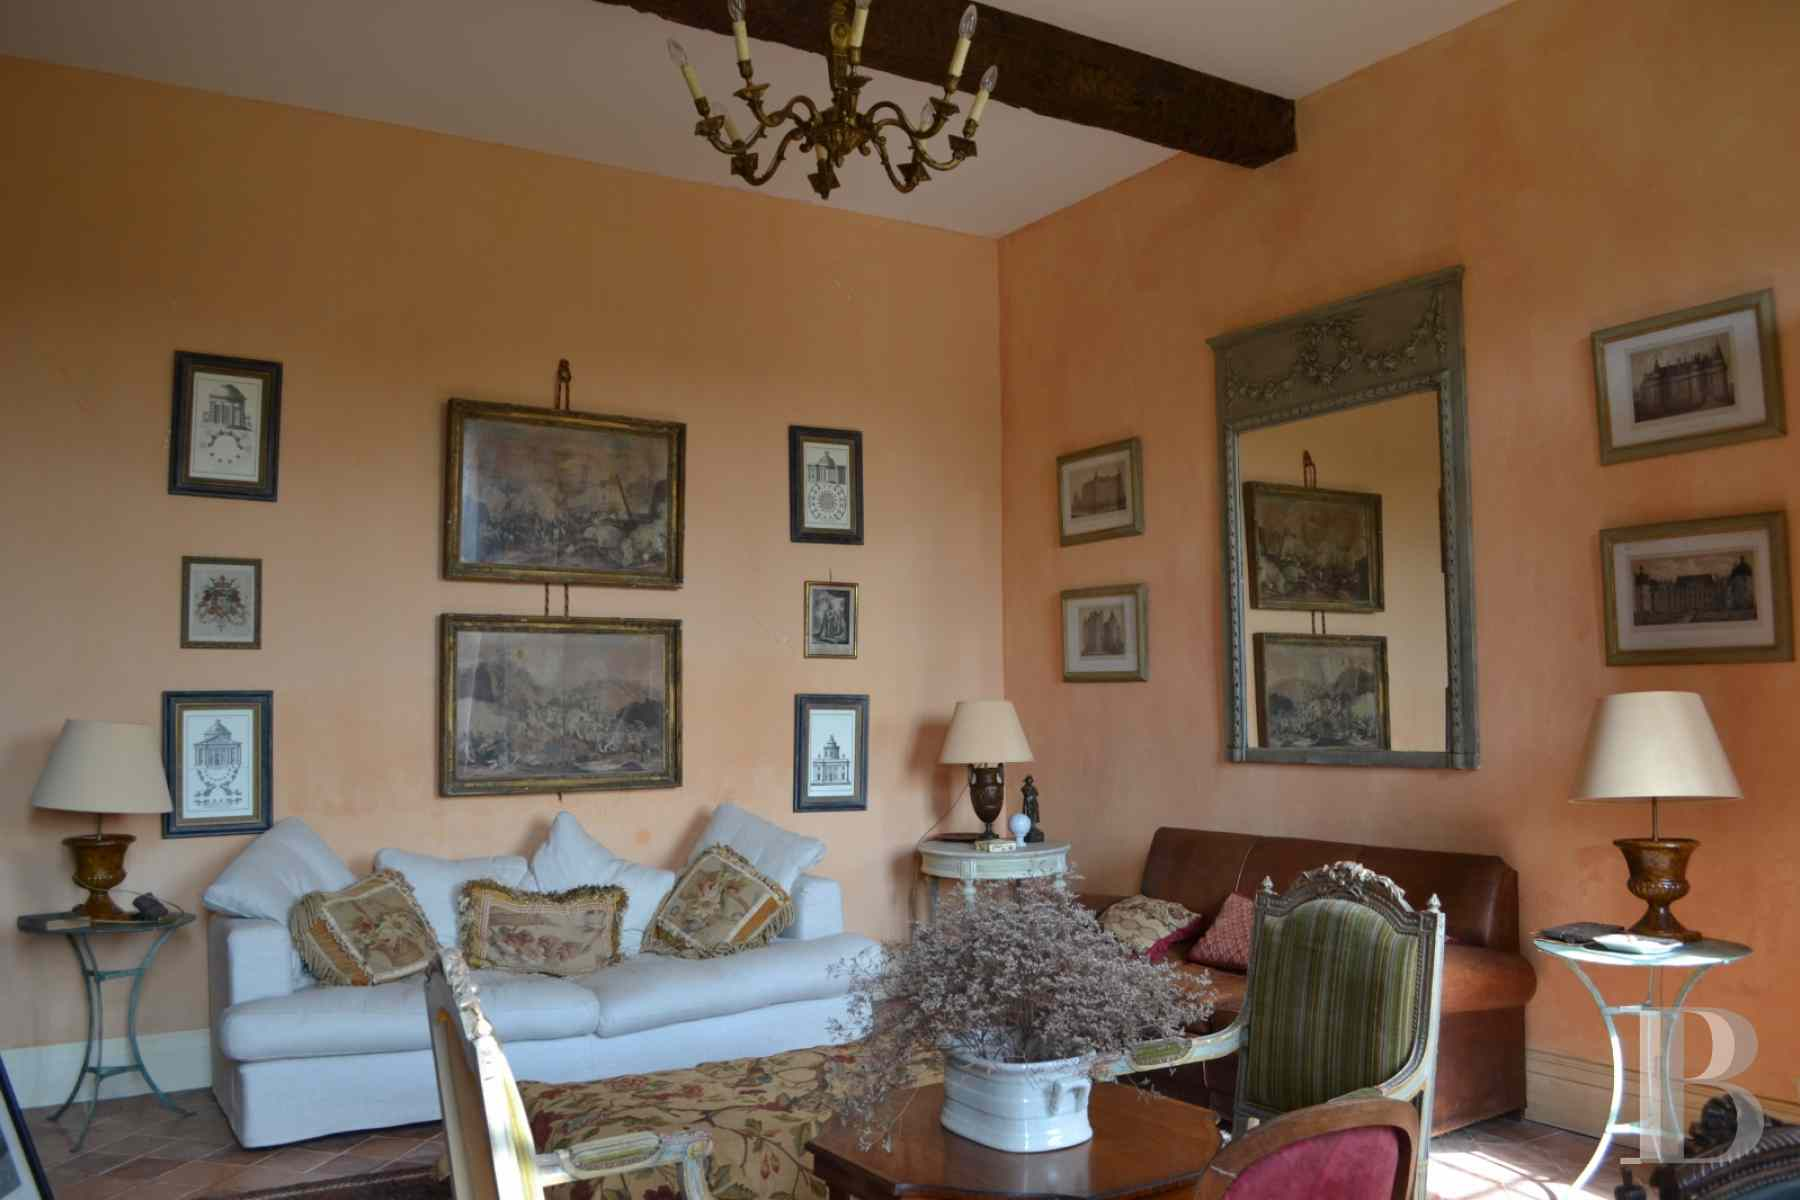 property for sale France aquitaine gascony armagnac - 8 zoom